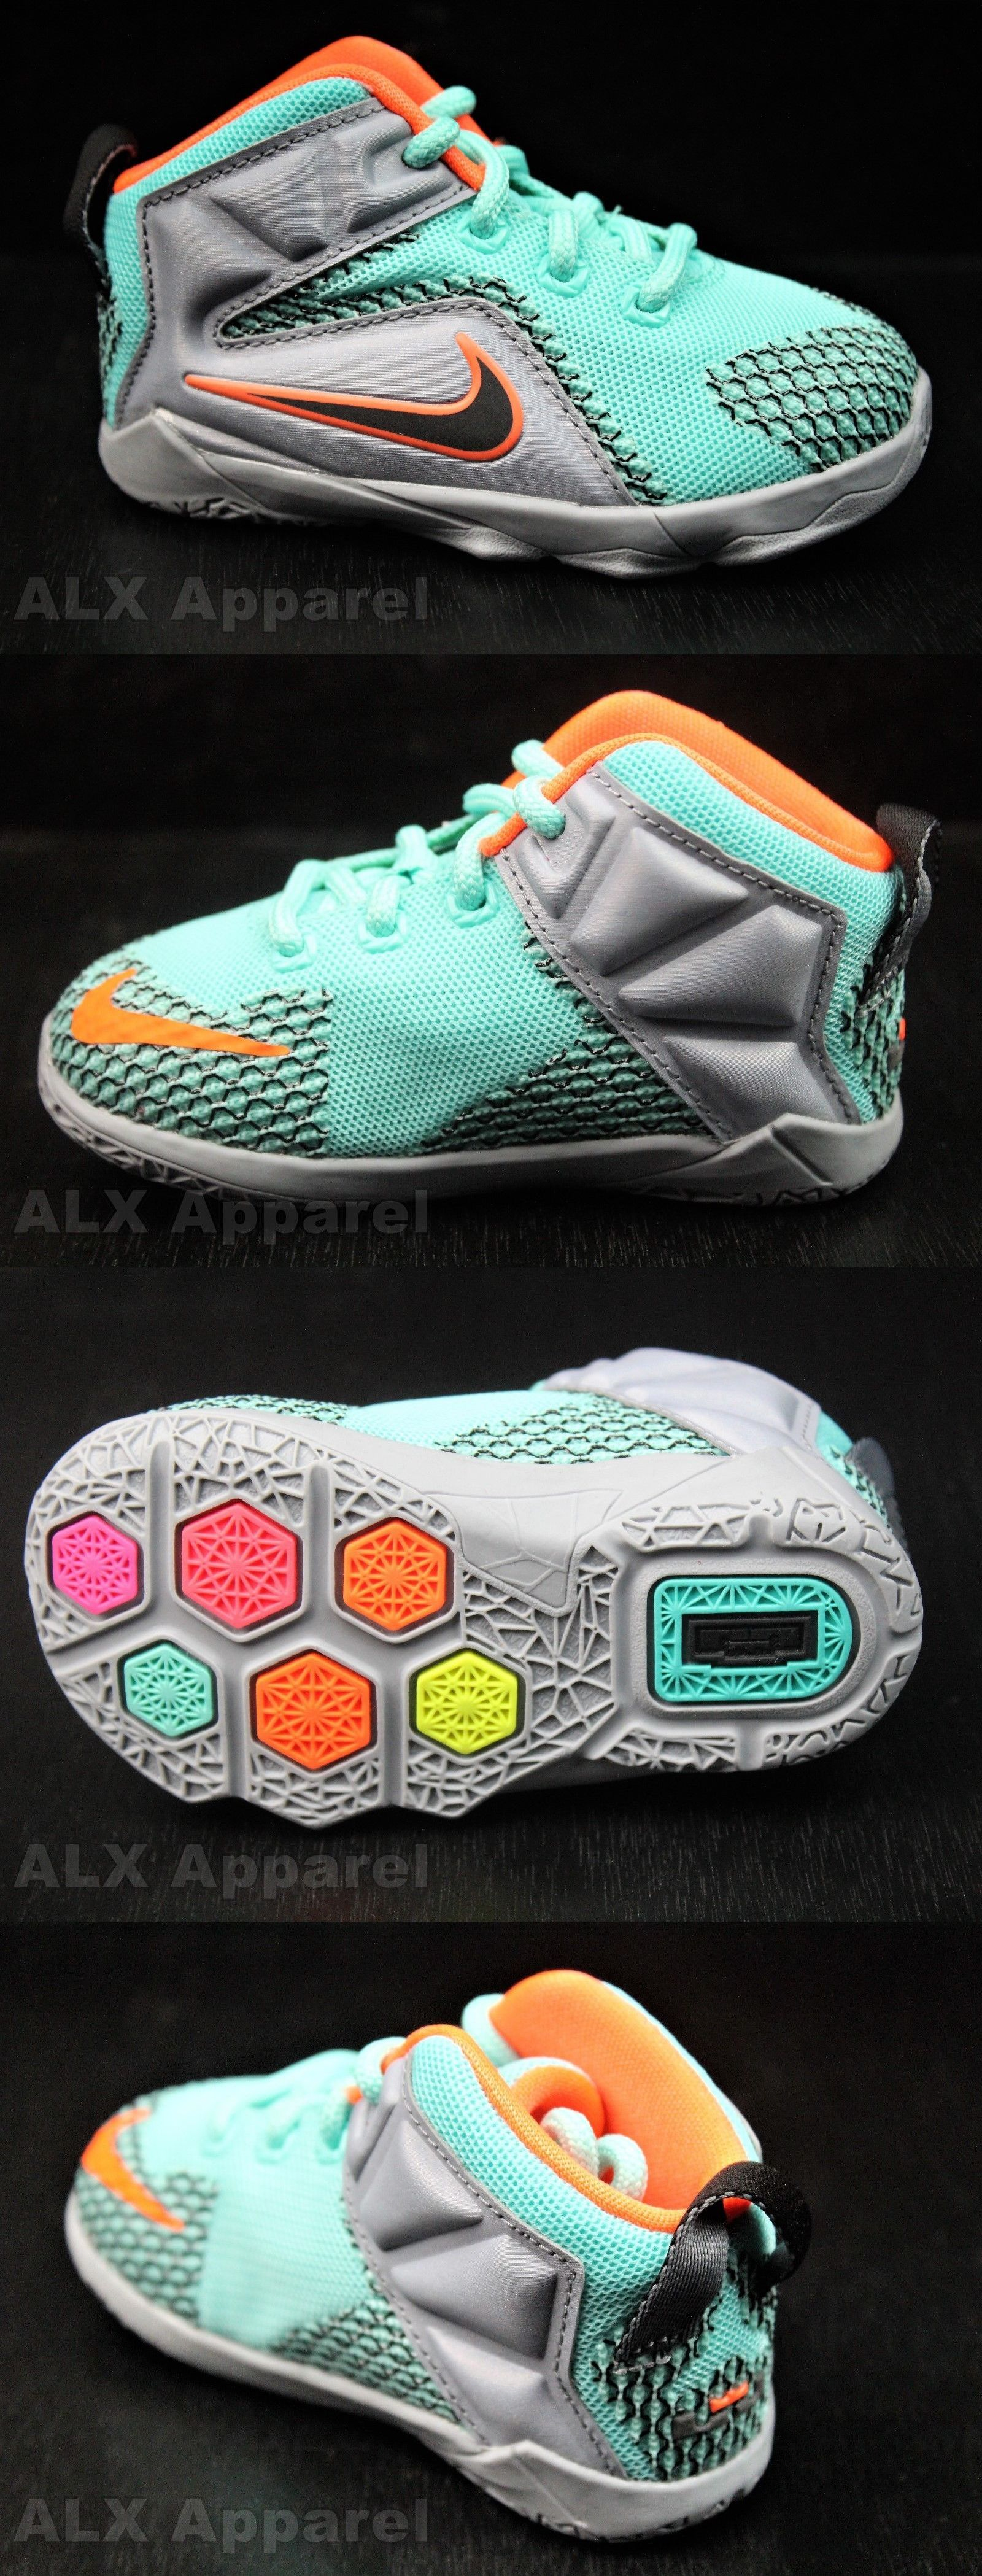 Baby Shoes Nike Lebron Xii 12 Baby Boy Shoes 302 Blue